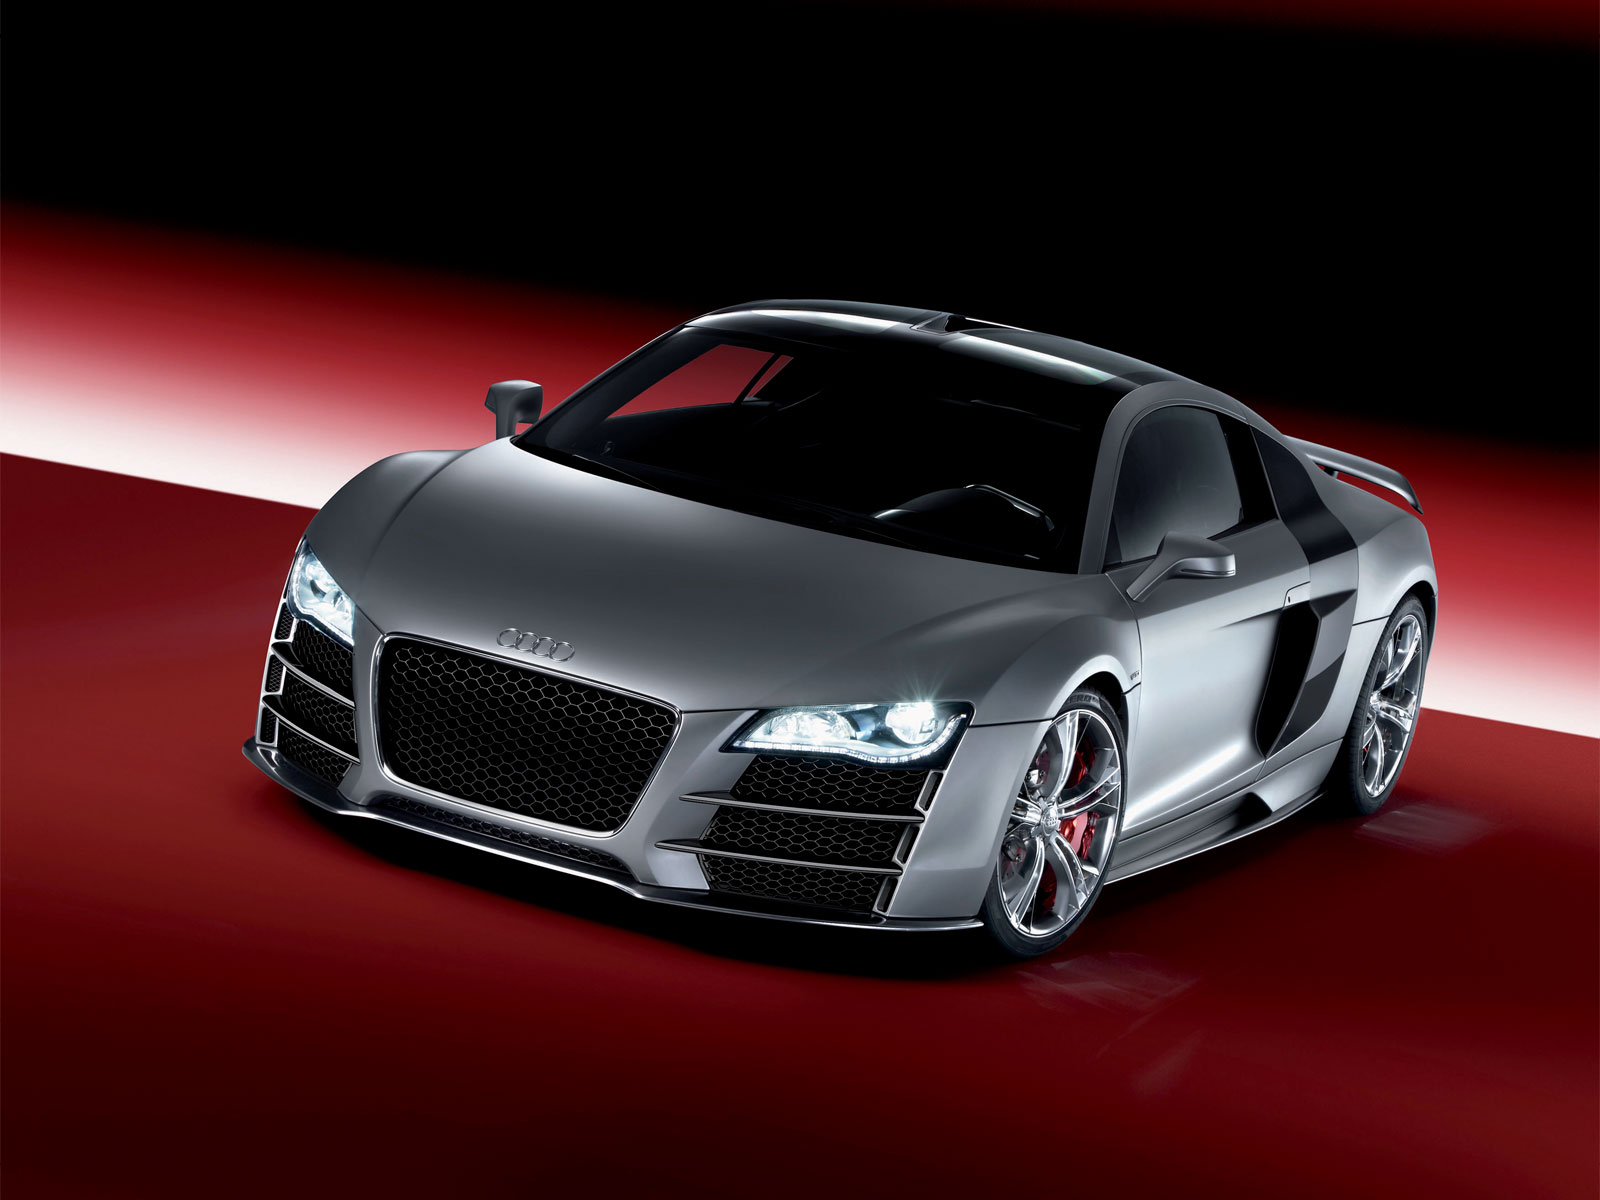 Audi R8 V12 TDI Concept Wallpaper Gallery Free Download